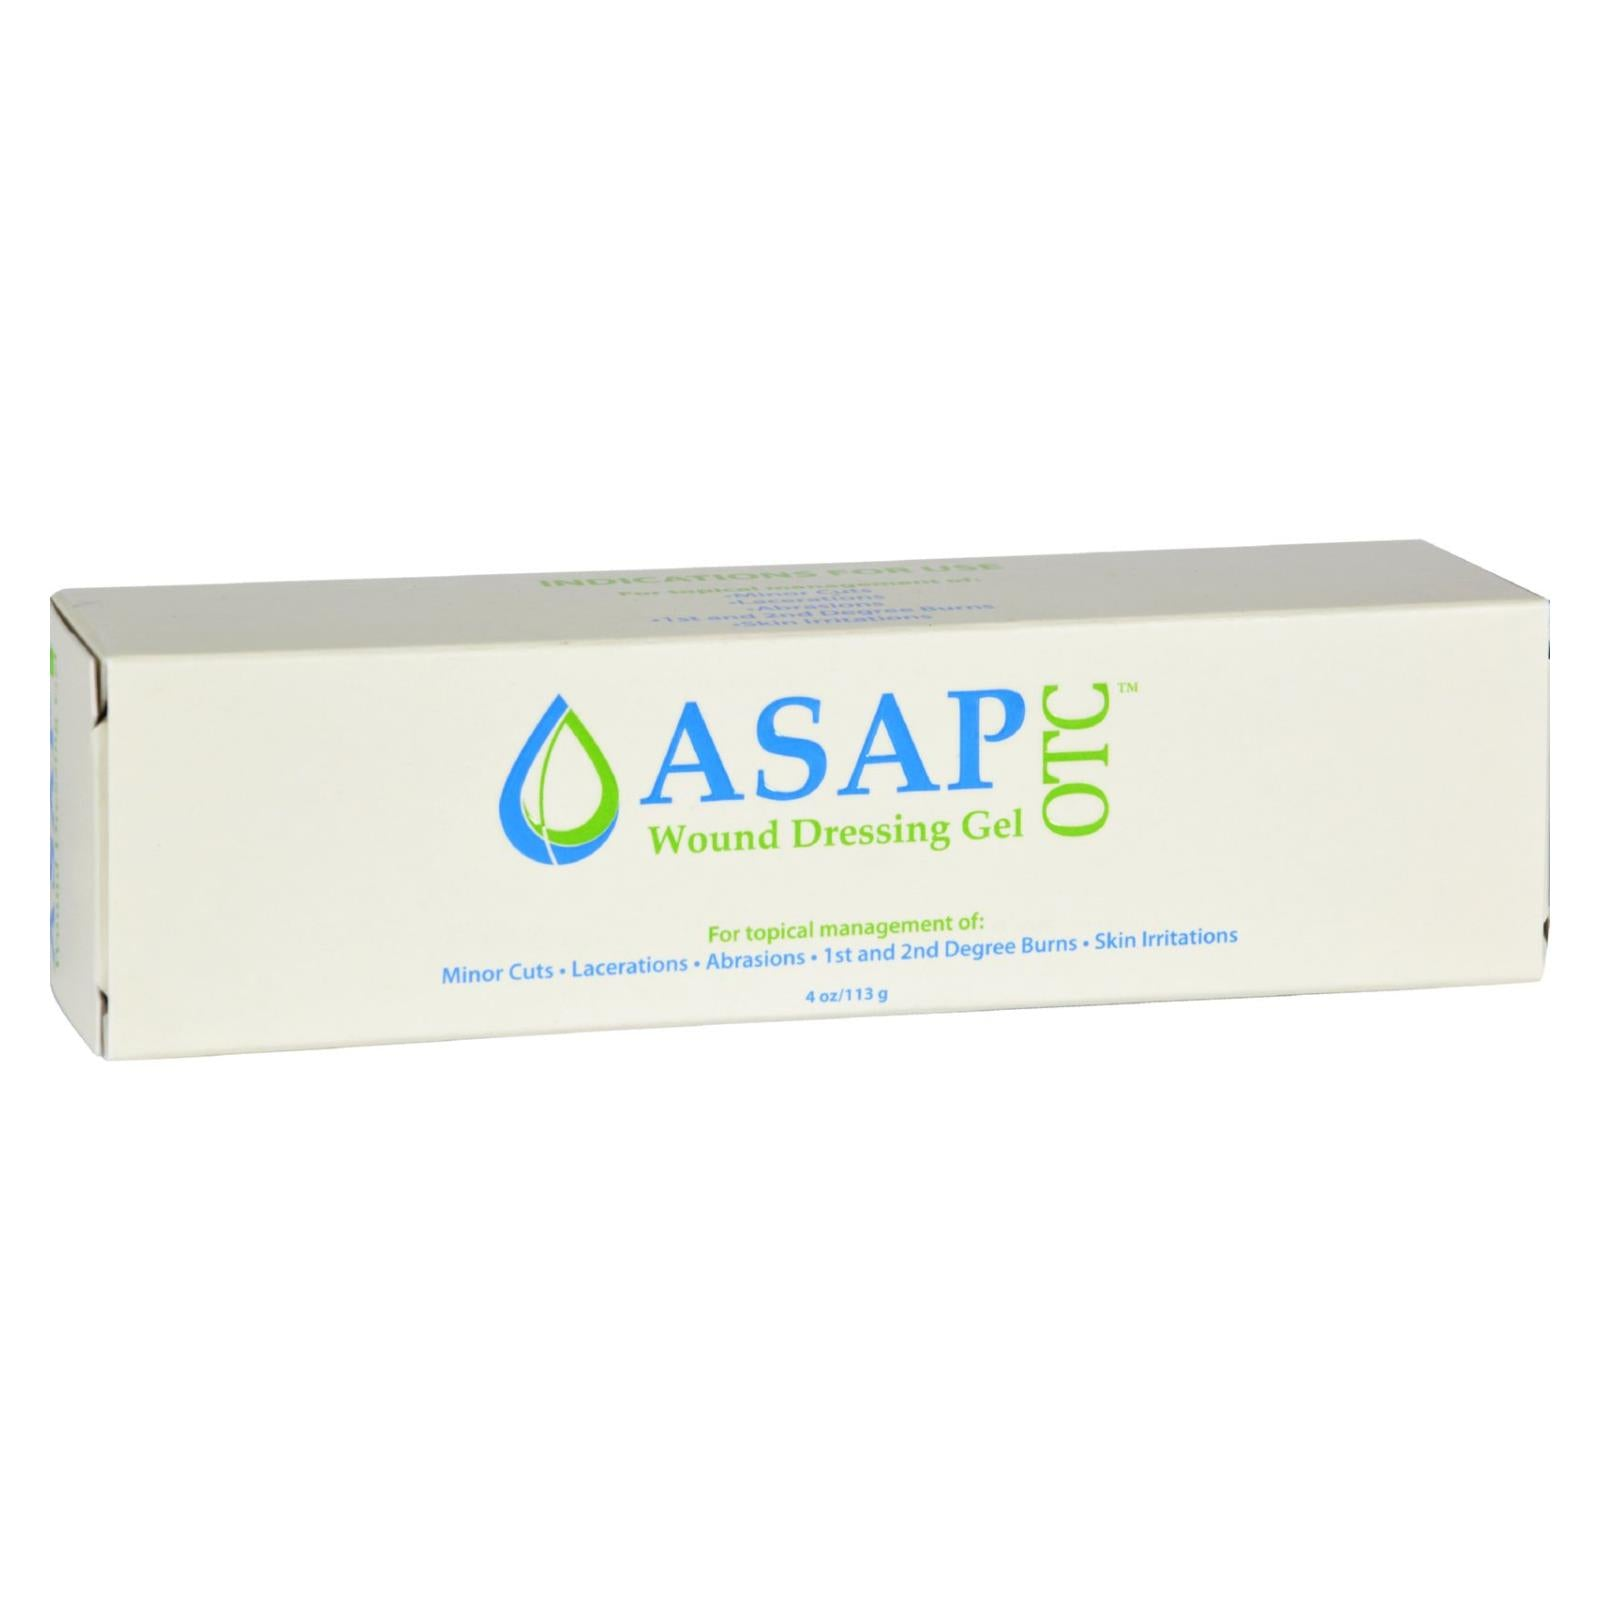 Buy American Biotech Labs Wound Dressing Gel - 4 oz - First Aid from Veroeco.com